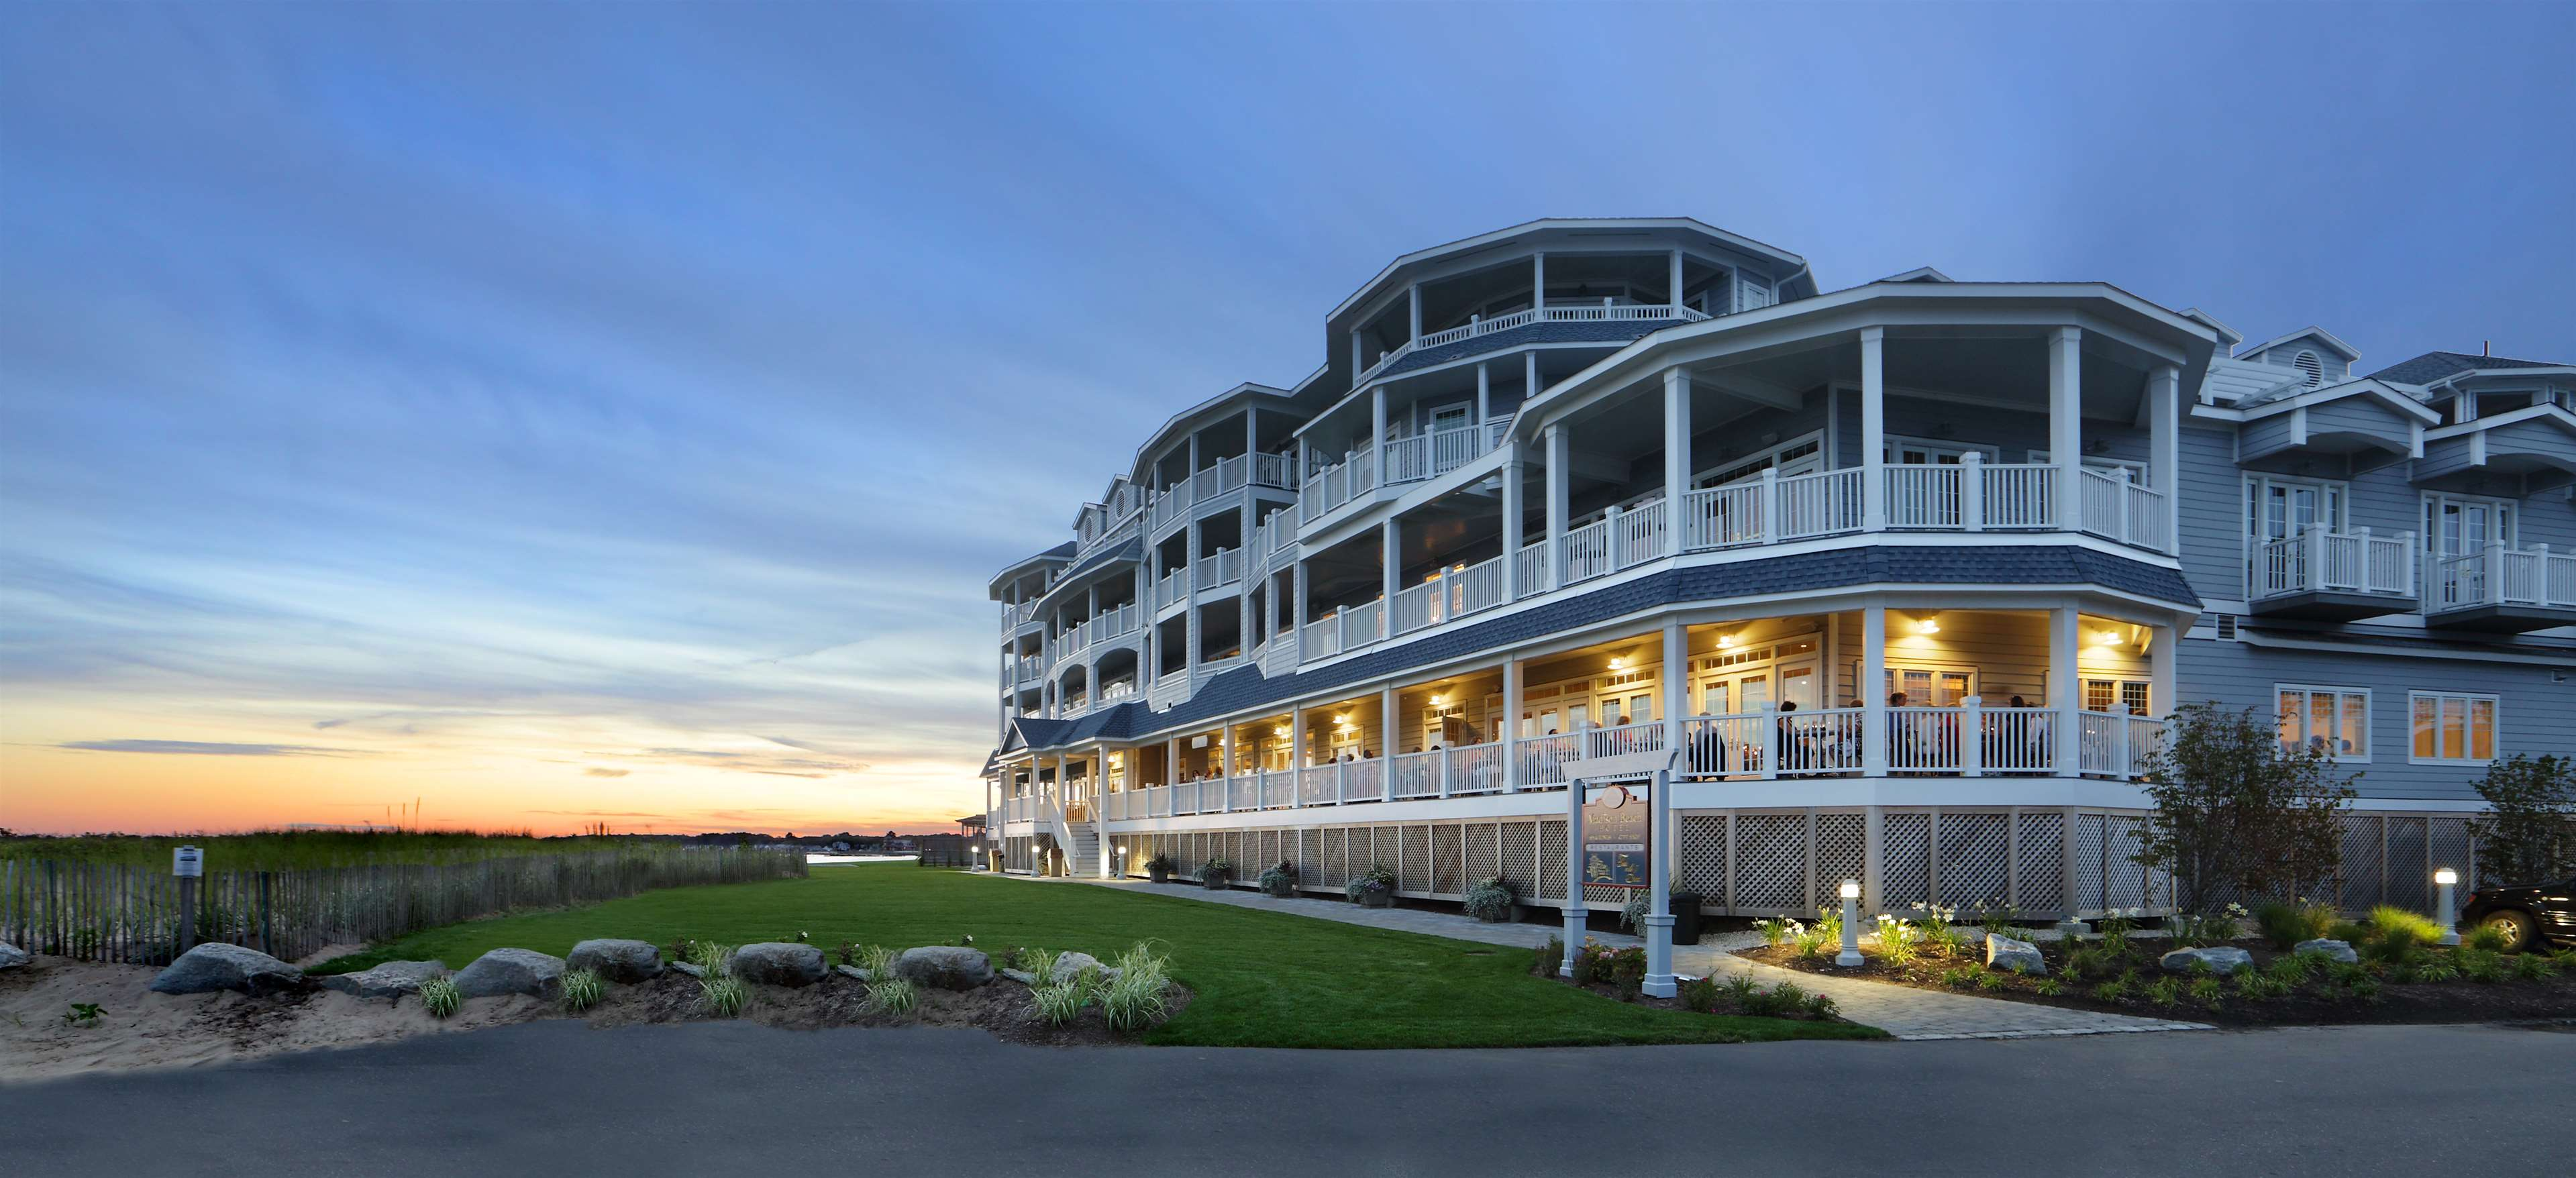 Madison Beach Hotel, Curio Collection by Hilton image 0